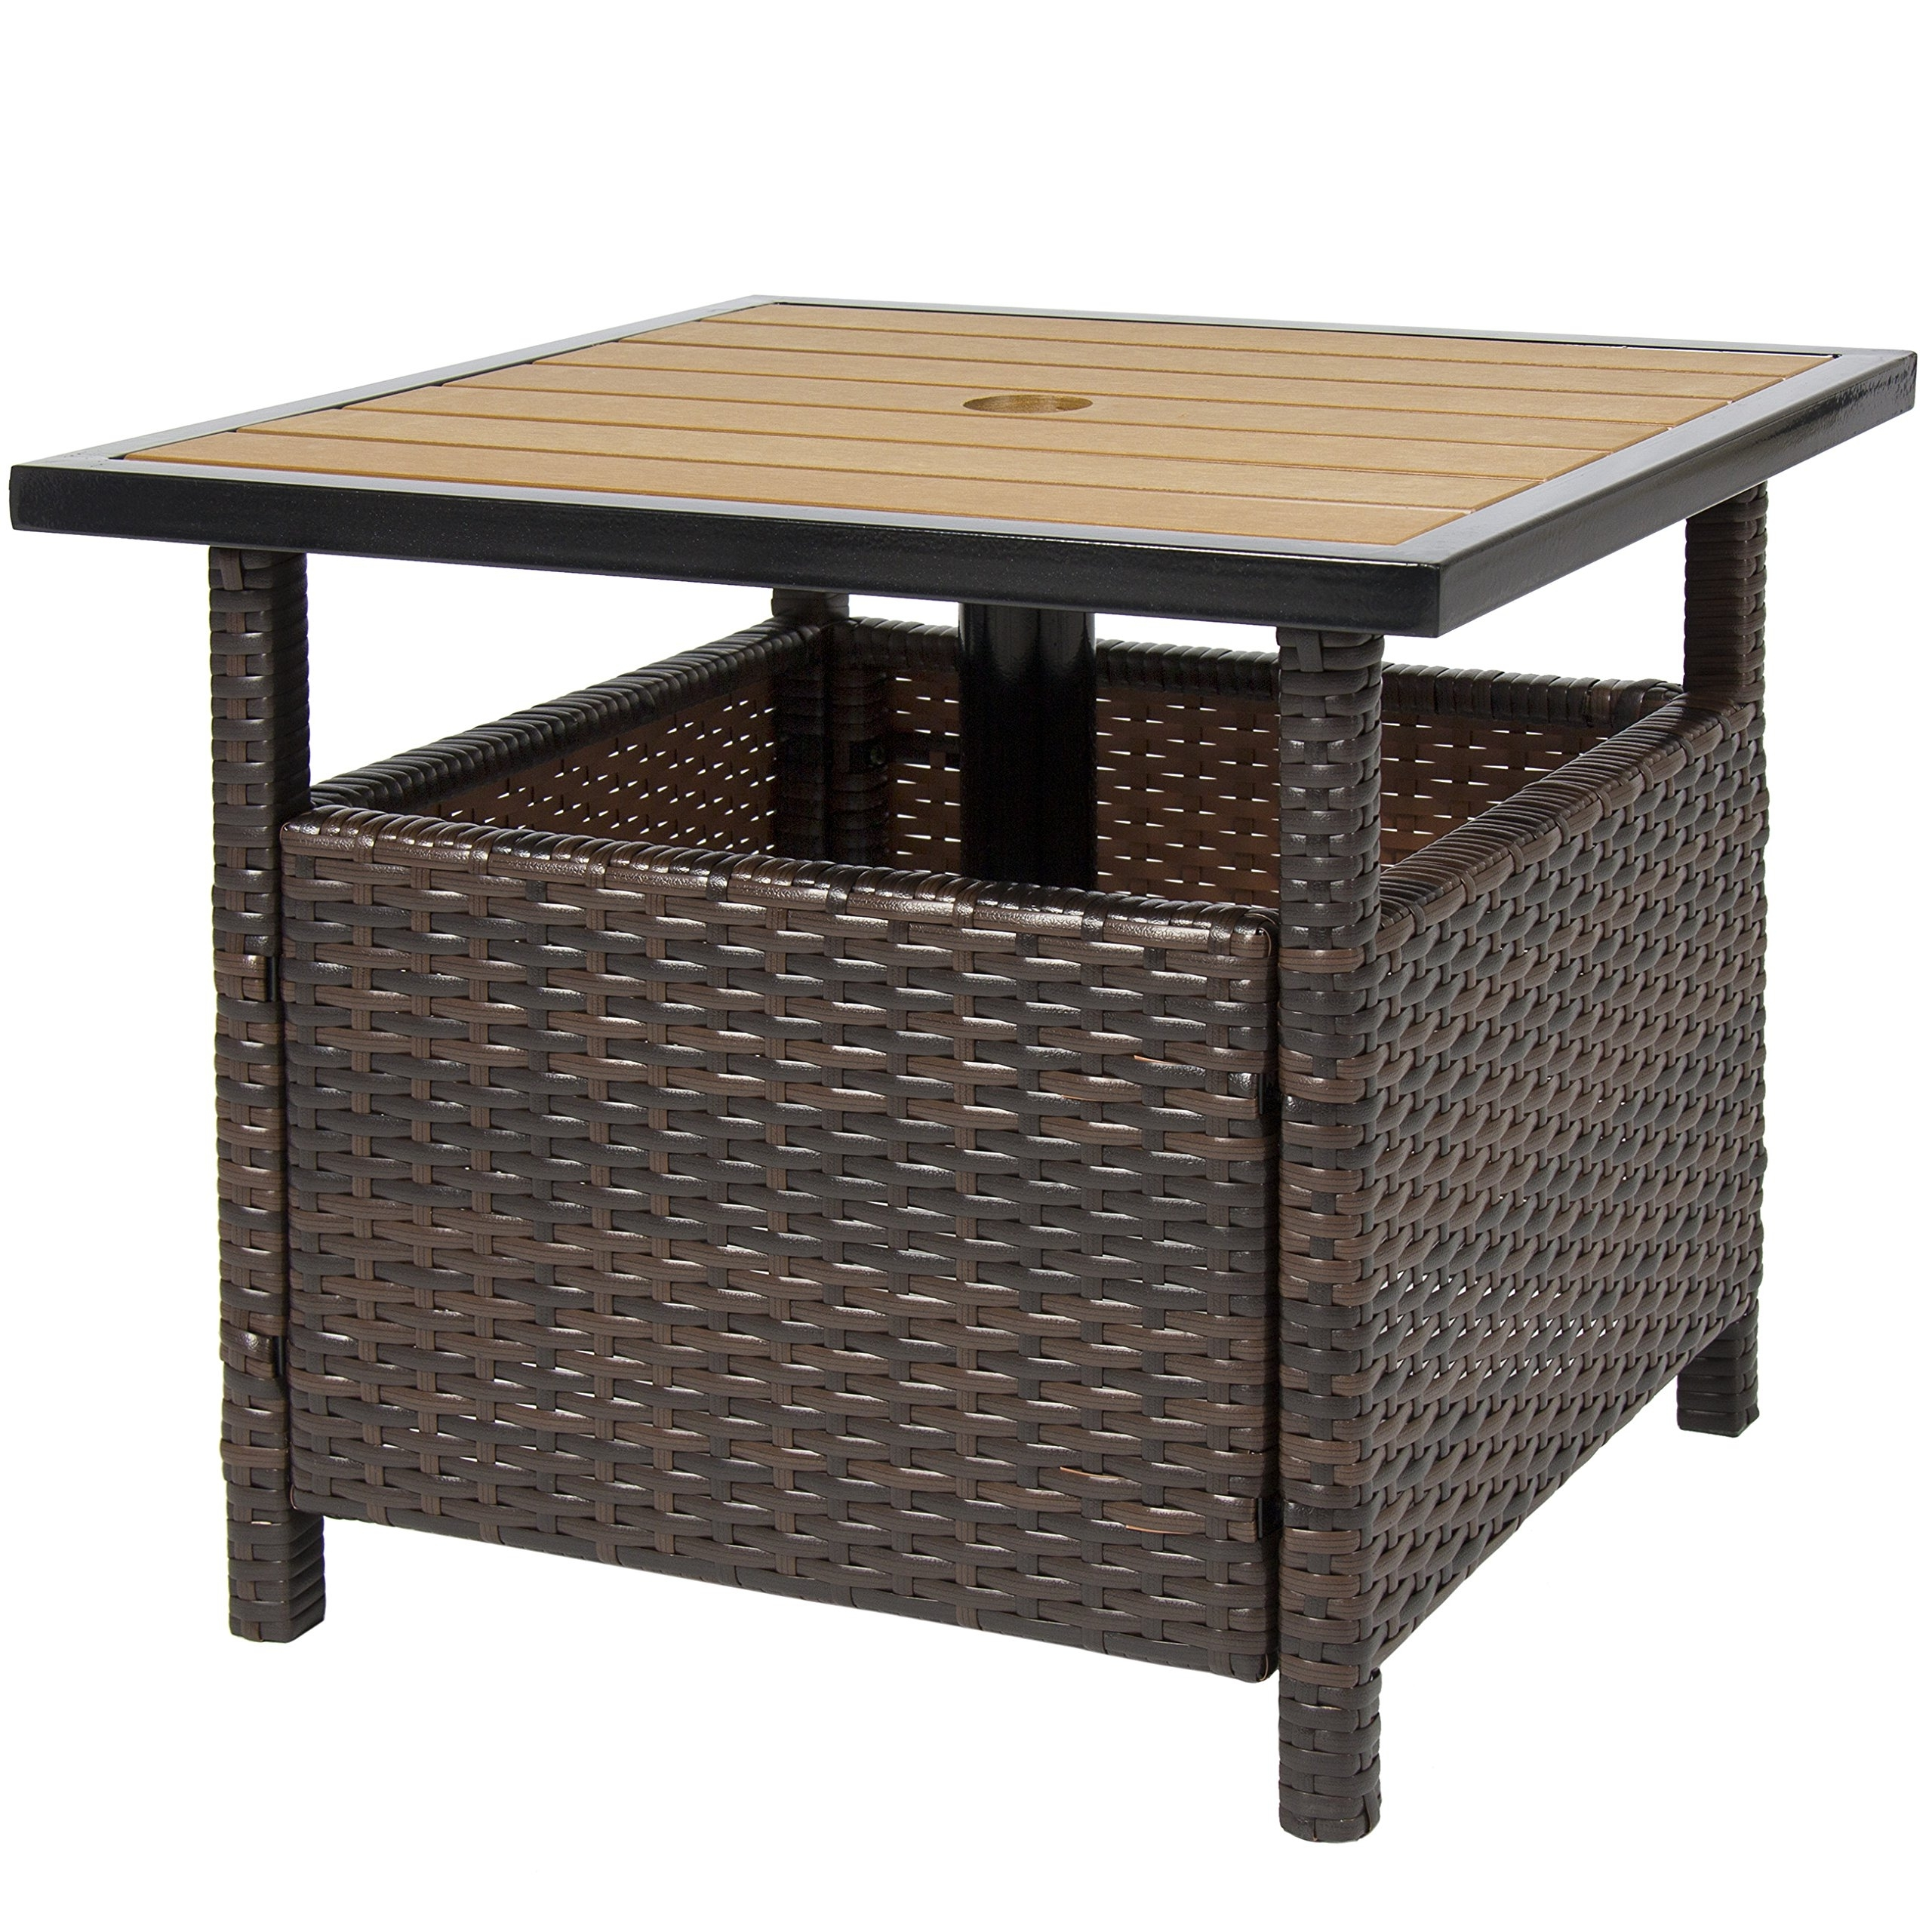 the best patio umbrella side tables within outdoor stand table find drawer cabinet home goods furniture maple childrens and chairs kmart height large jcpenney bbq wicker reclaimed